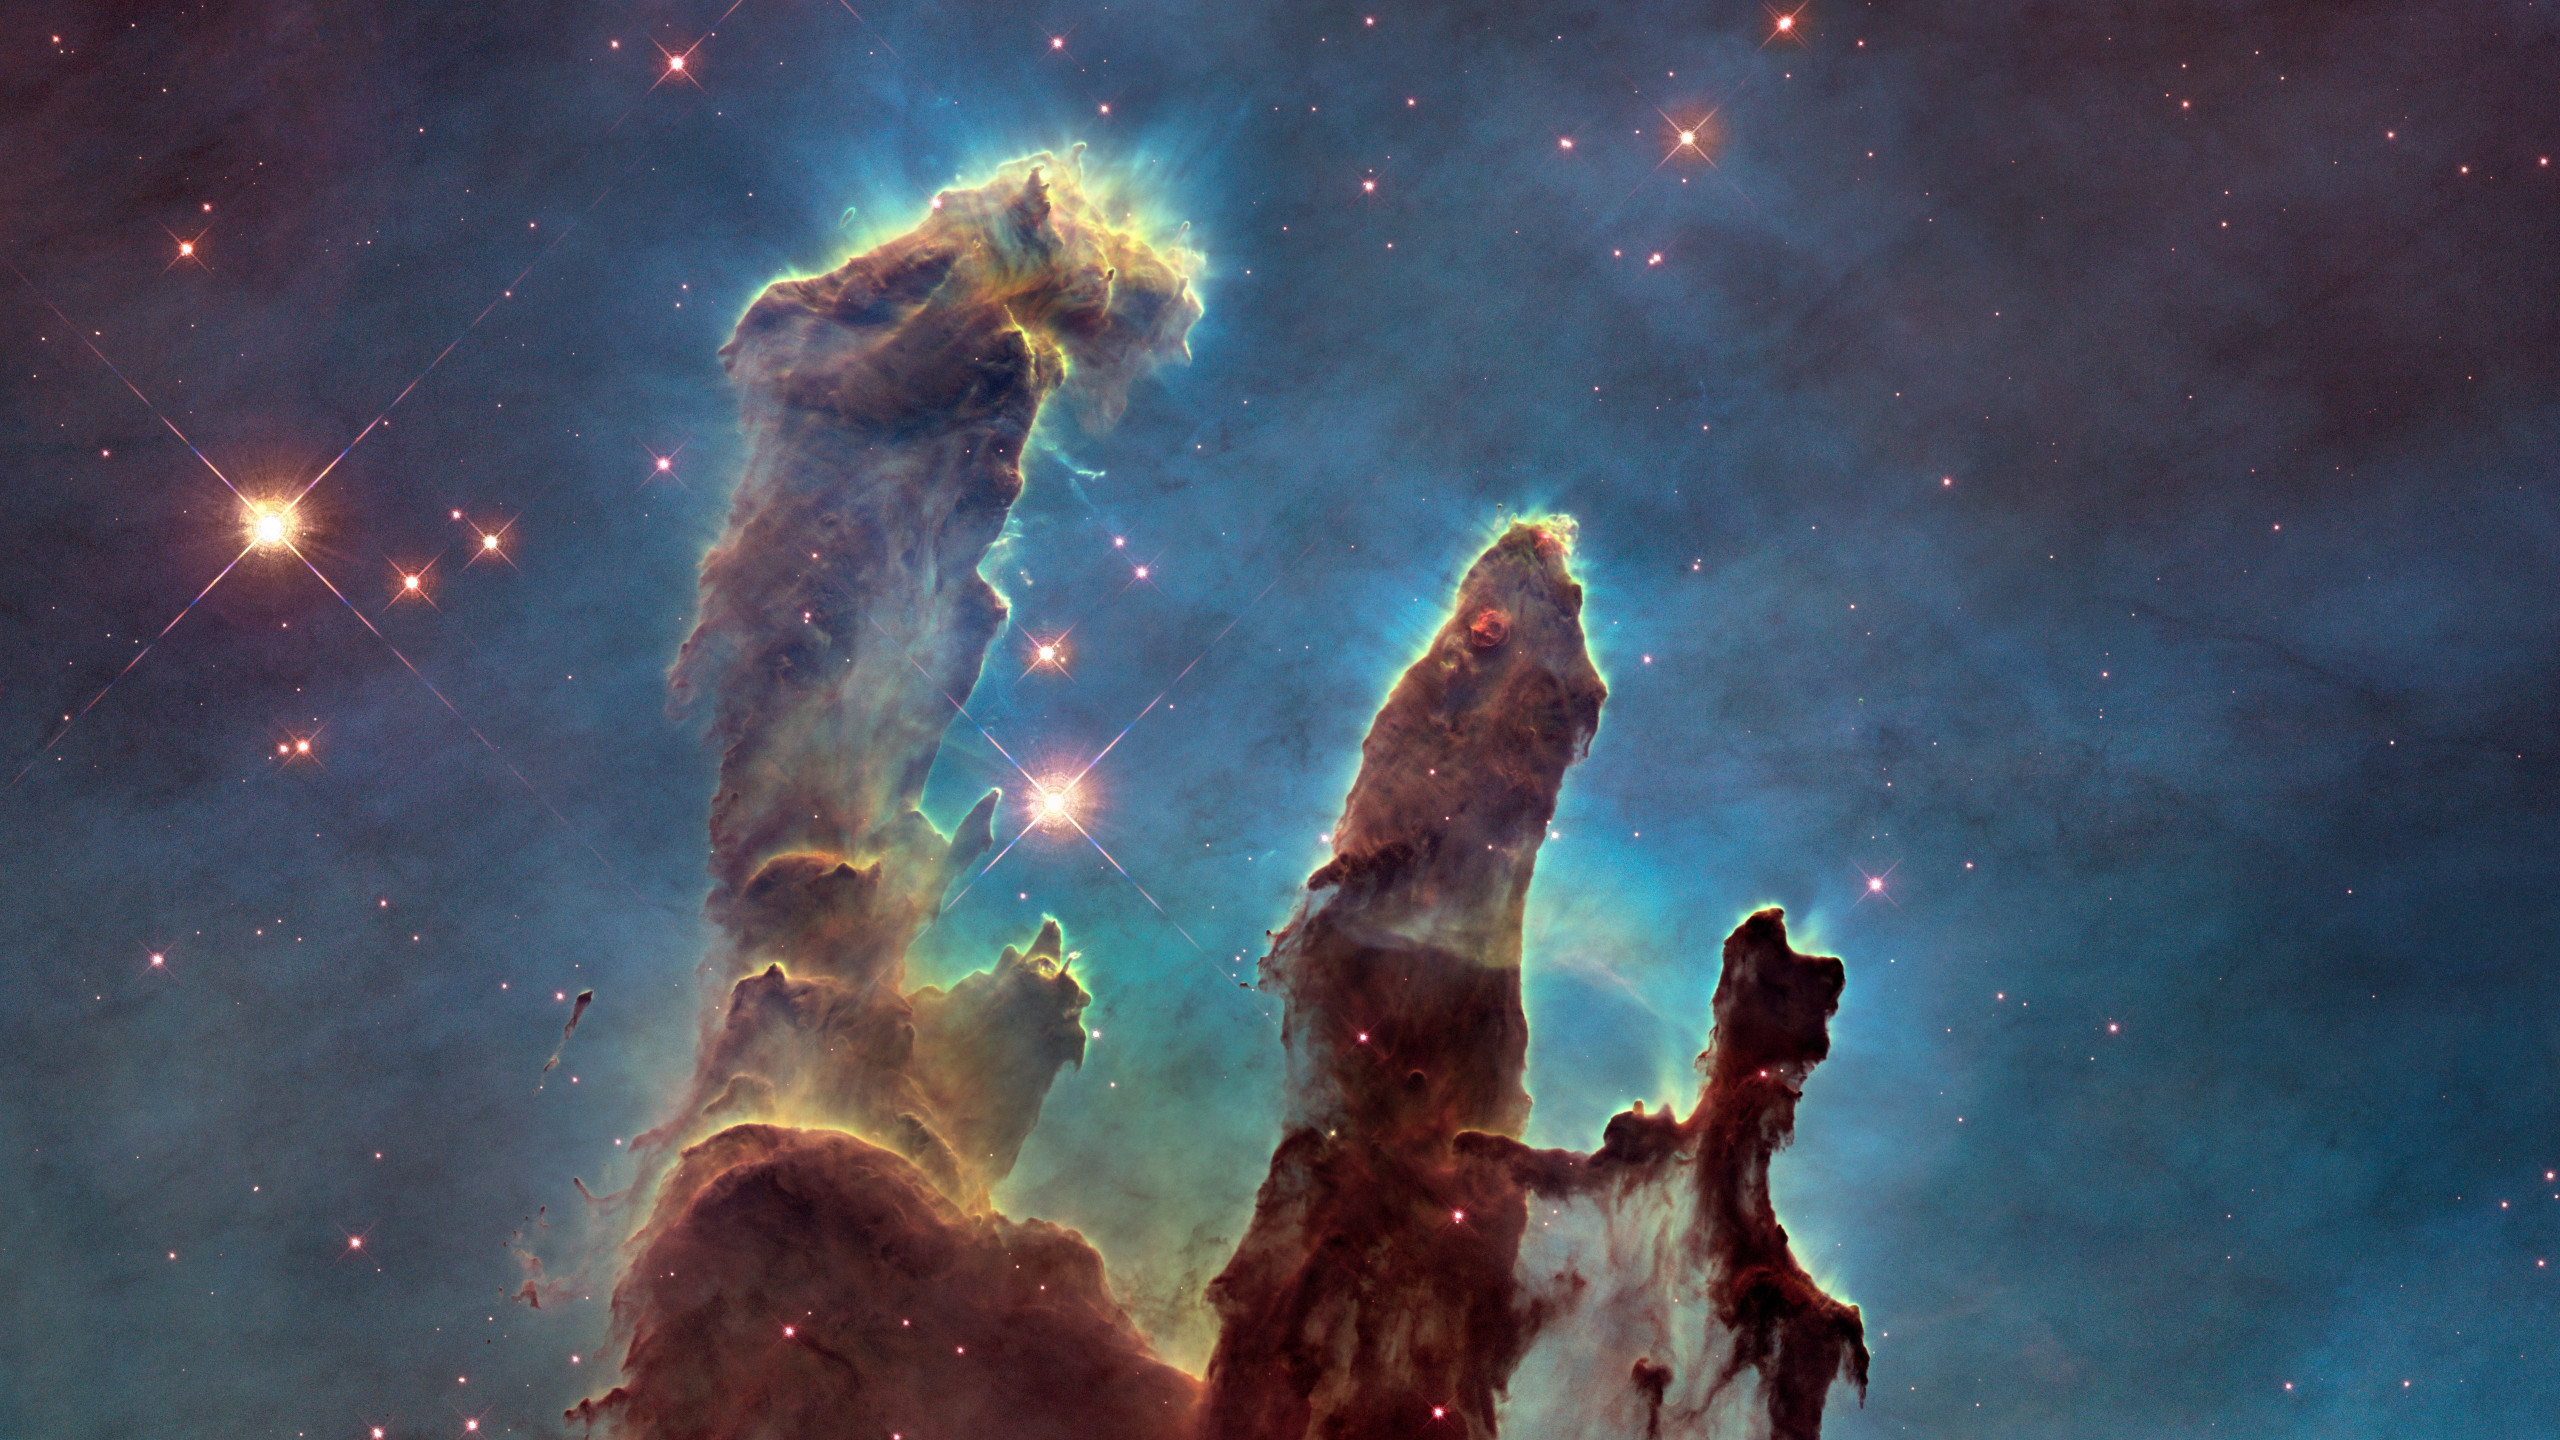 The Eagle Nebula's Pillars of Creation wallpaper 2560x1440